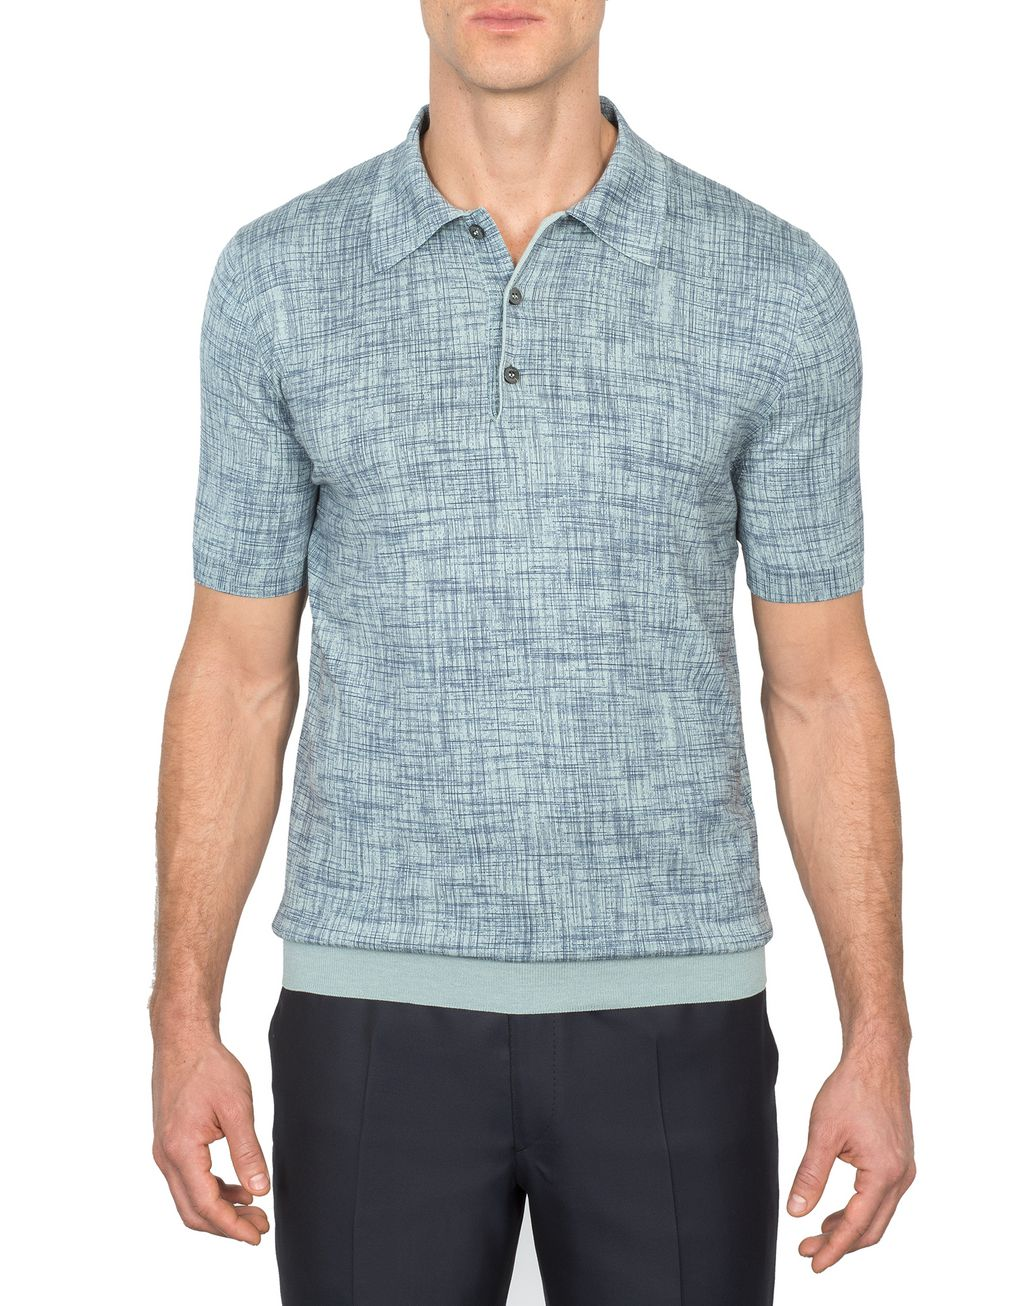 BRIONI Bluette Printed Cotton and Silk Polo Shirt   T-Shirts & Polos Man r